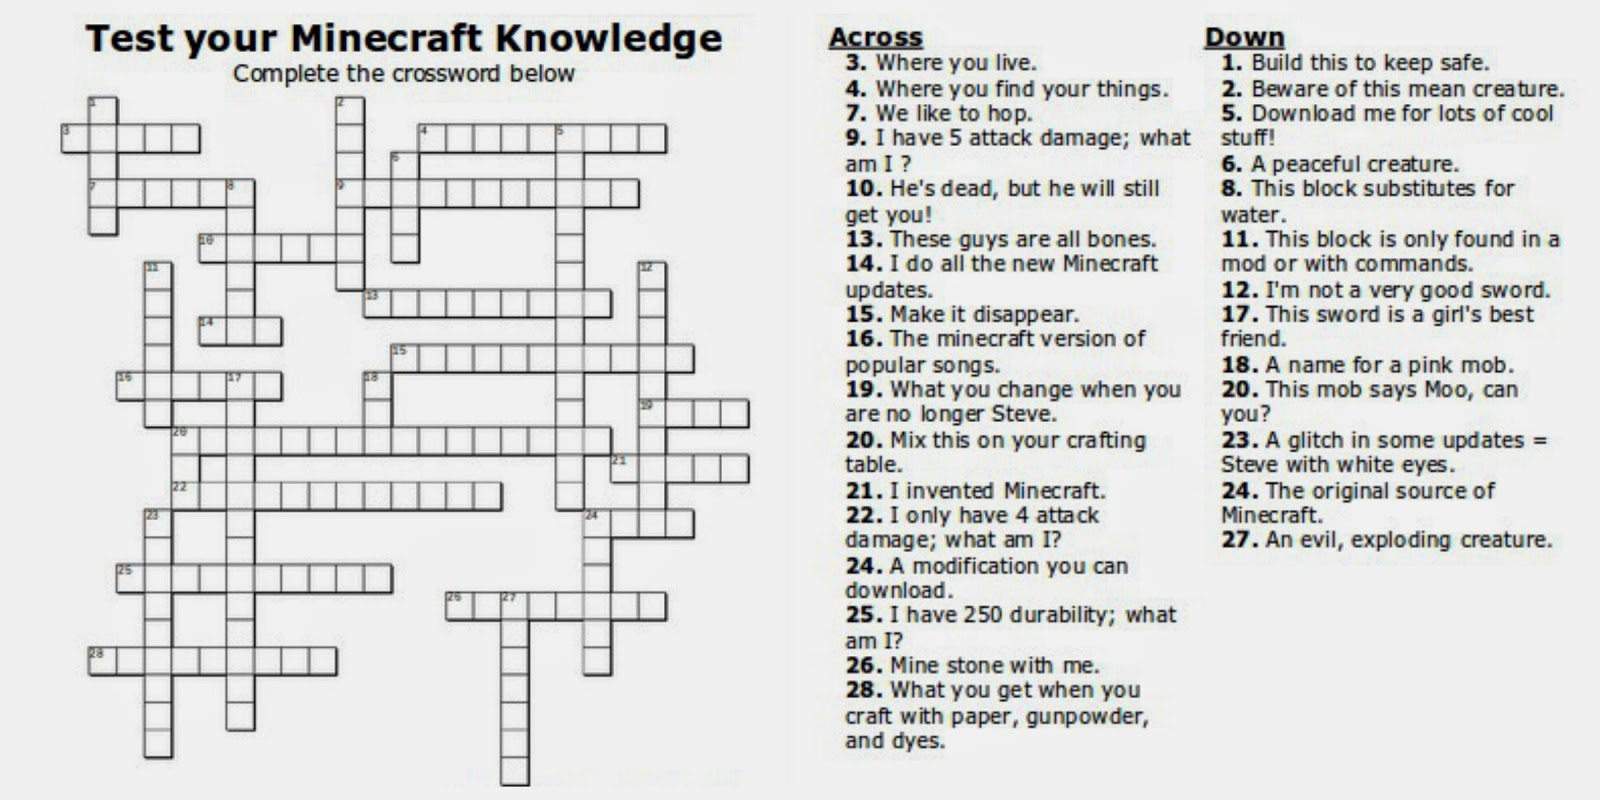 Free Printable Minecraft Crossword Search: Test Your Minecraft - Printable Crossword Puzzles For Teens